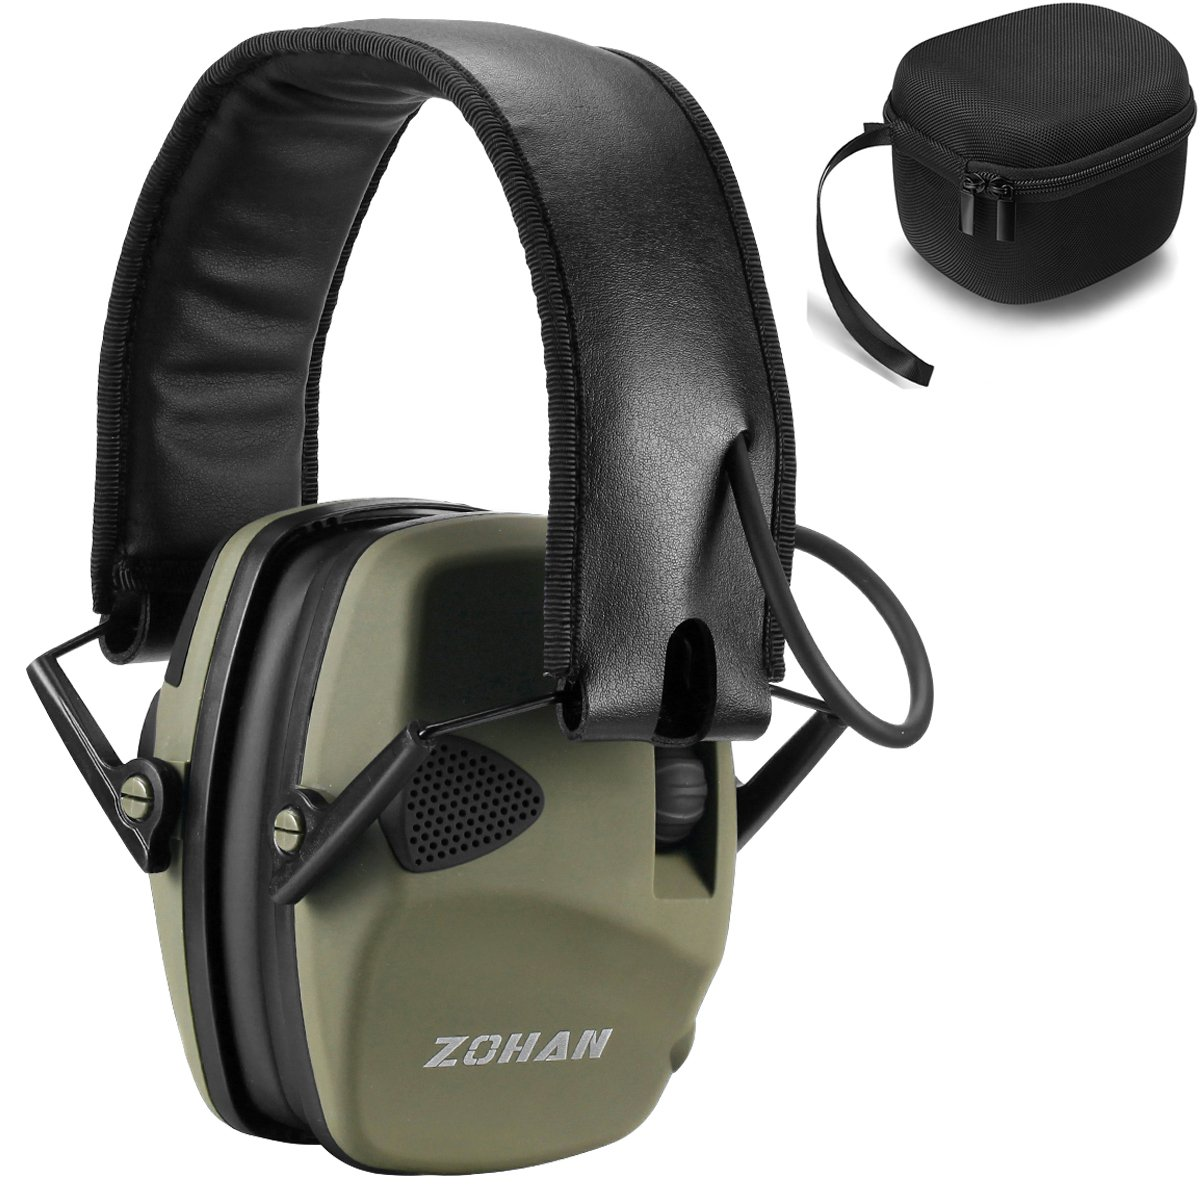 ZOHAN Sound Amplification Electronic Shooting Earmuff With a Hard Carrying Case, Ultra Low-Profile Noise Reduction Ear Defender for Hunting, NRR 22dB Professional Hearing Protector (Army Green)